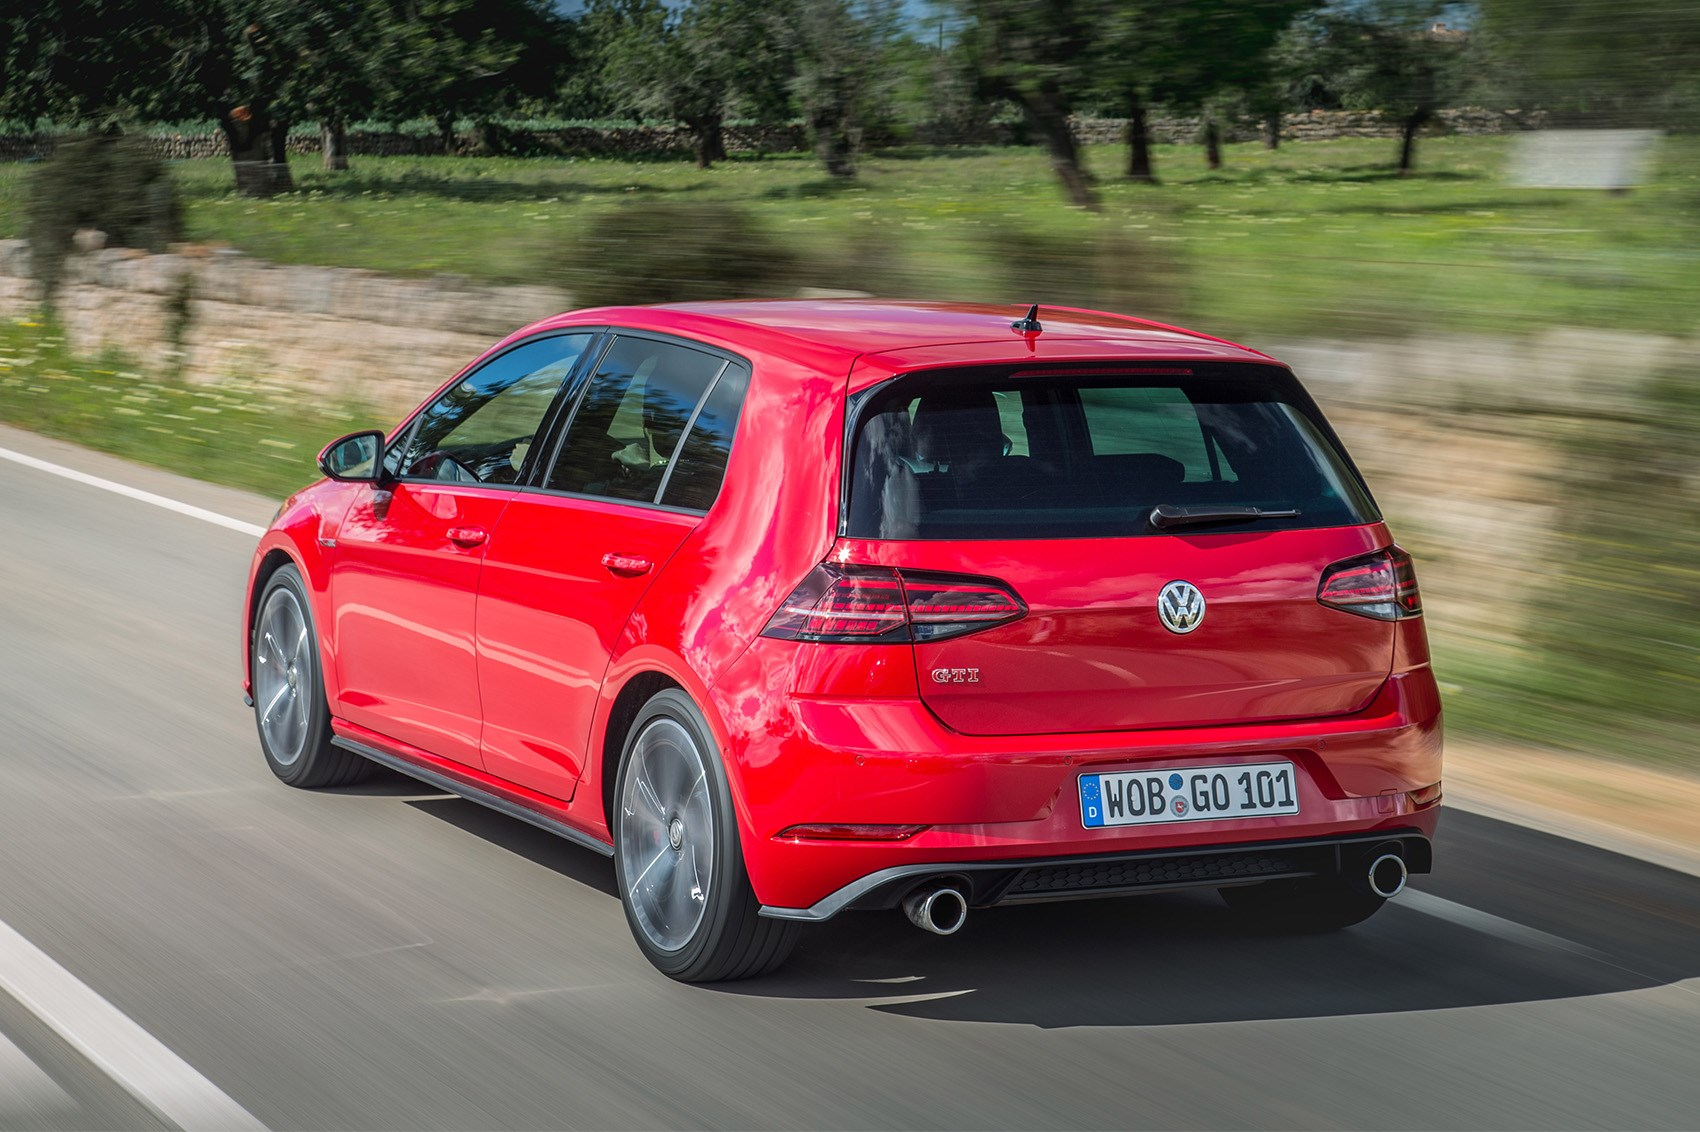 Should I buy a VW Golf or wait for the GTI Performance?